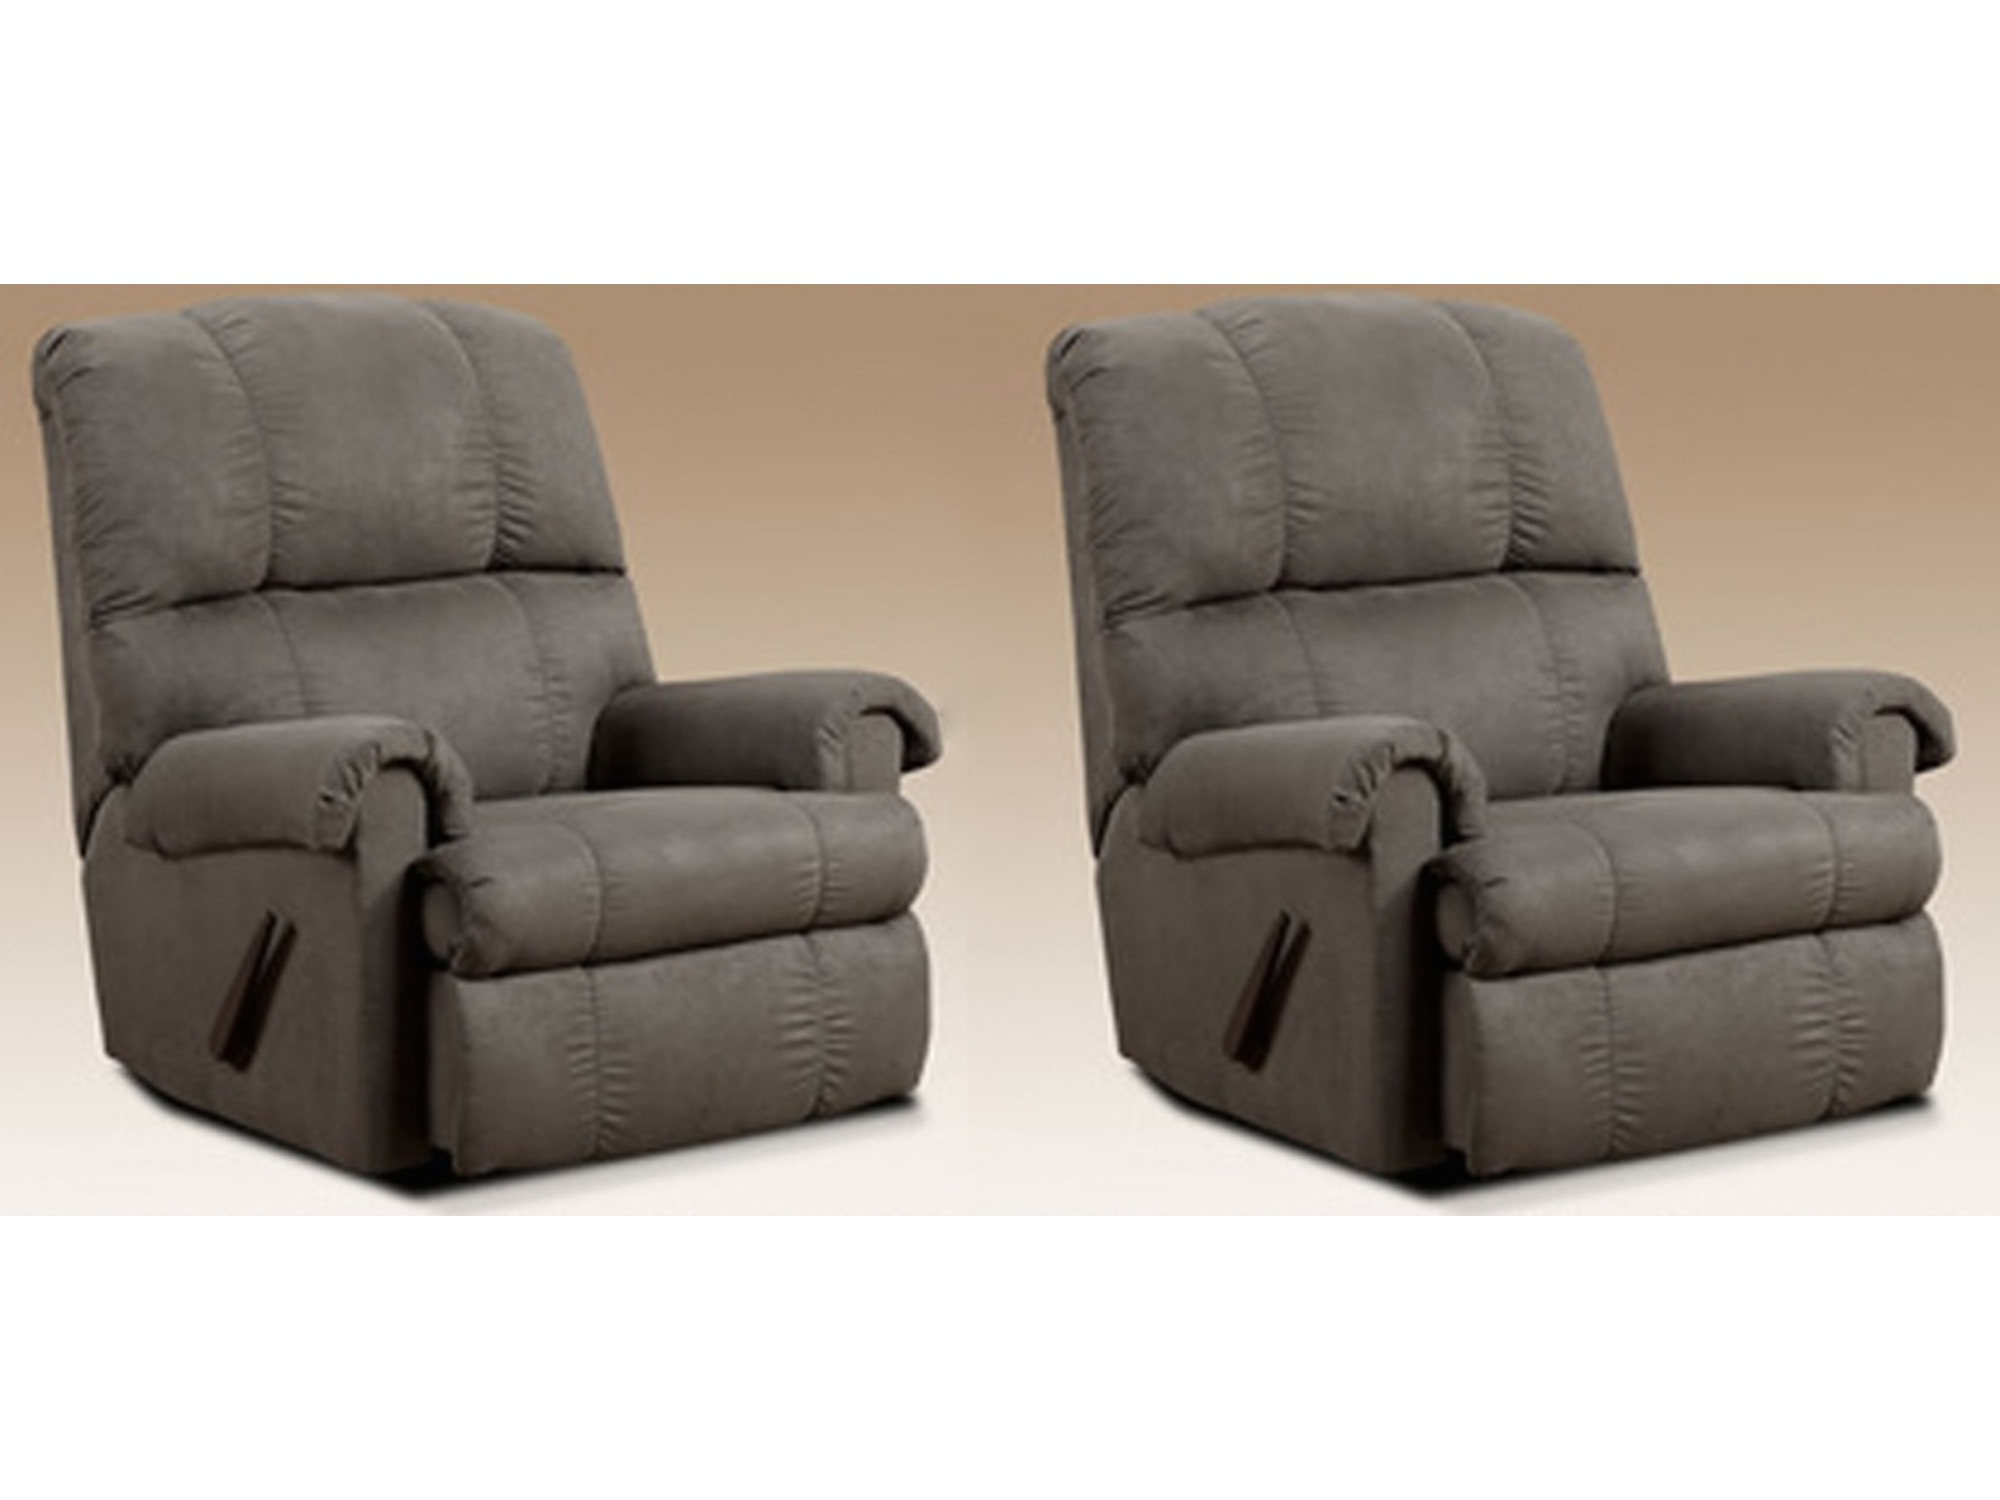 Graphite Rocker Recliner Pair 309196